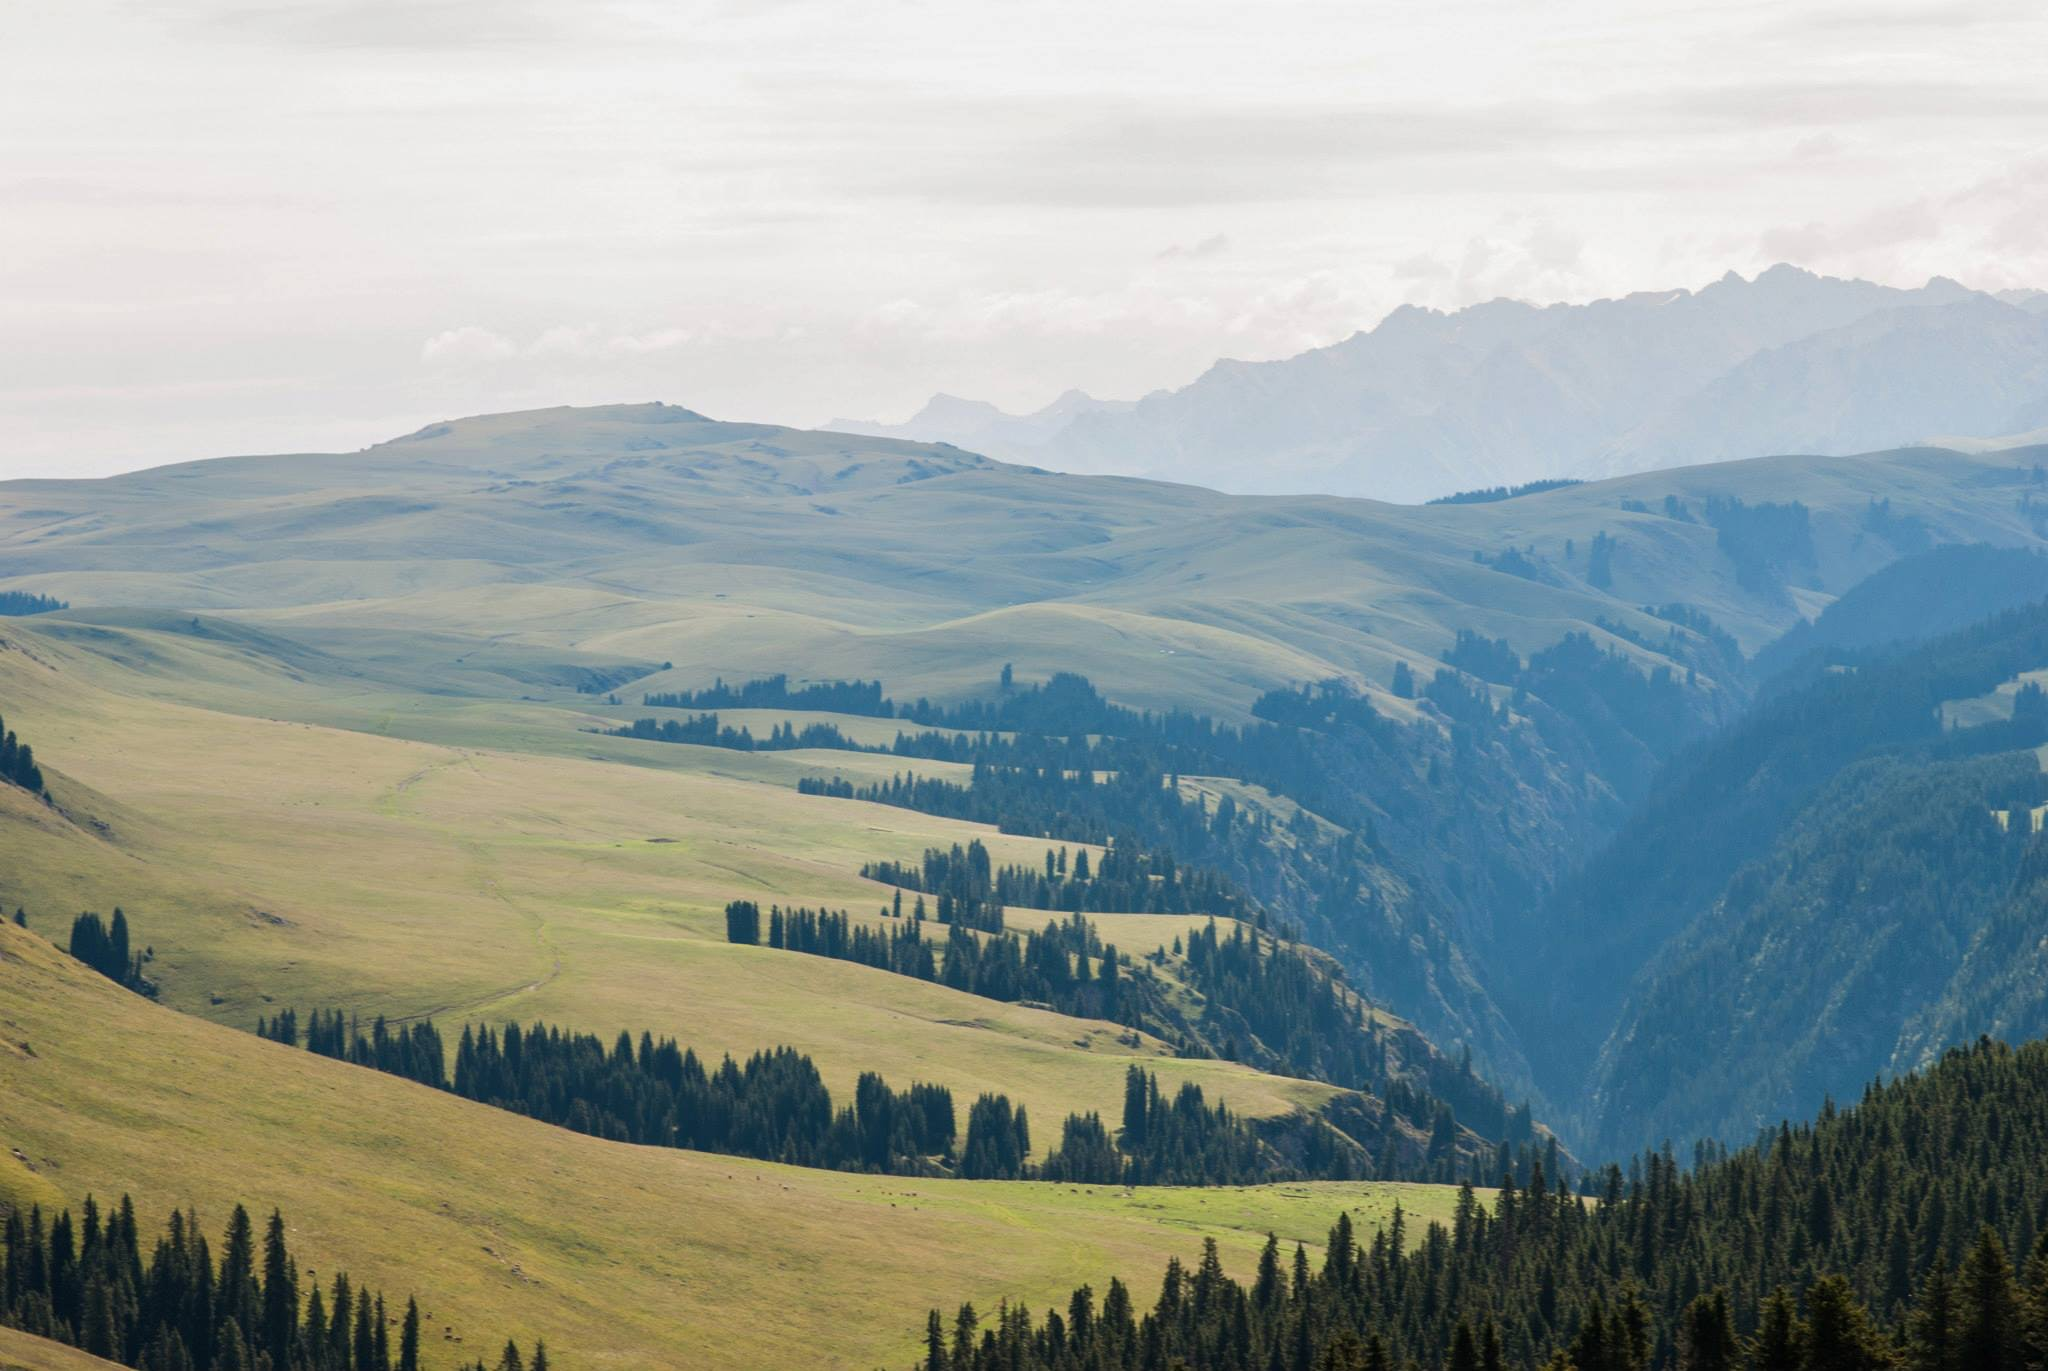 Grassy hills and a wooded valley in Mongolia